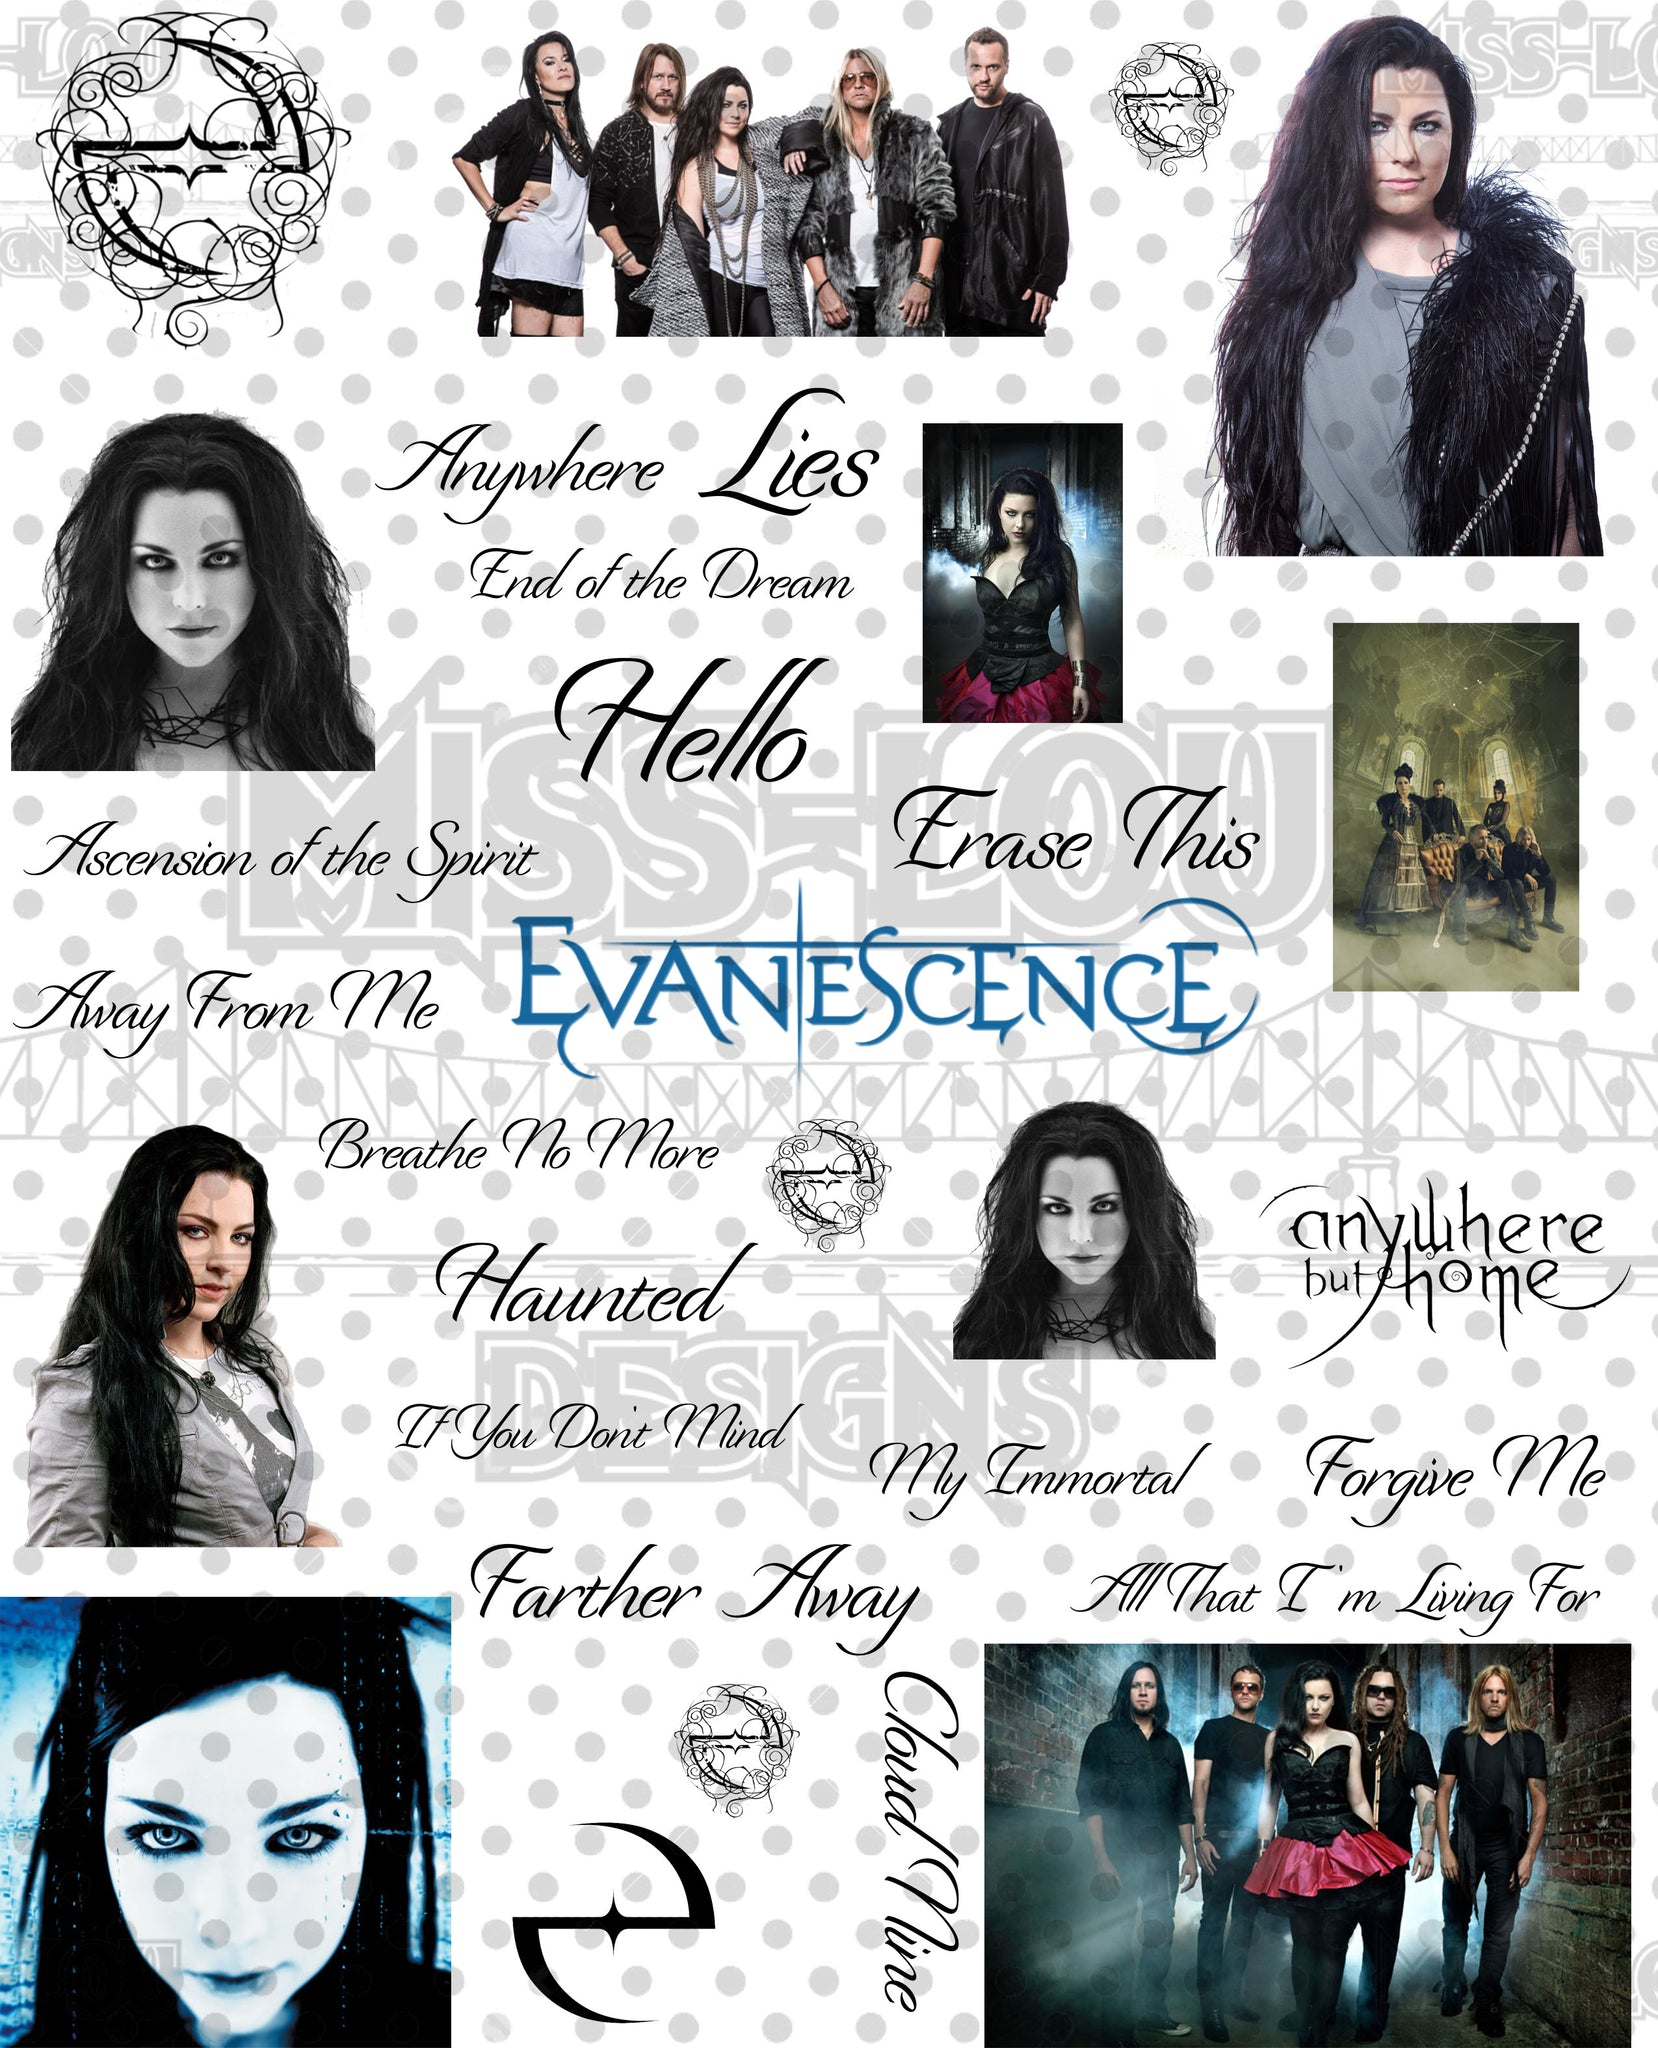 Evanescence Fan Sheet Digital Download